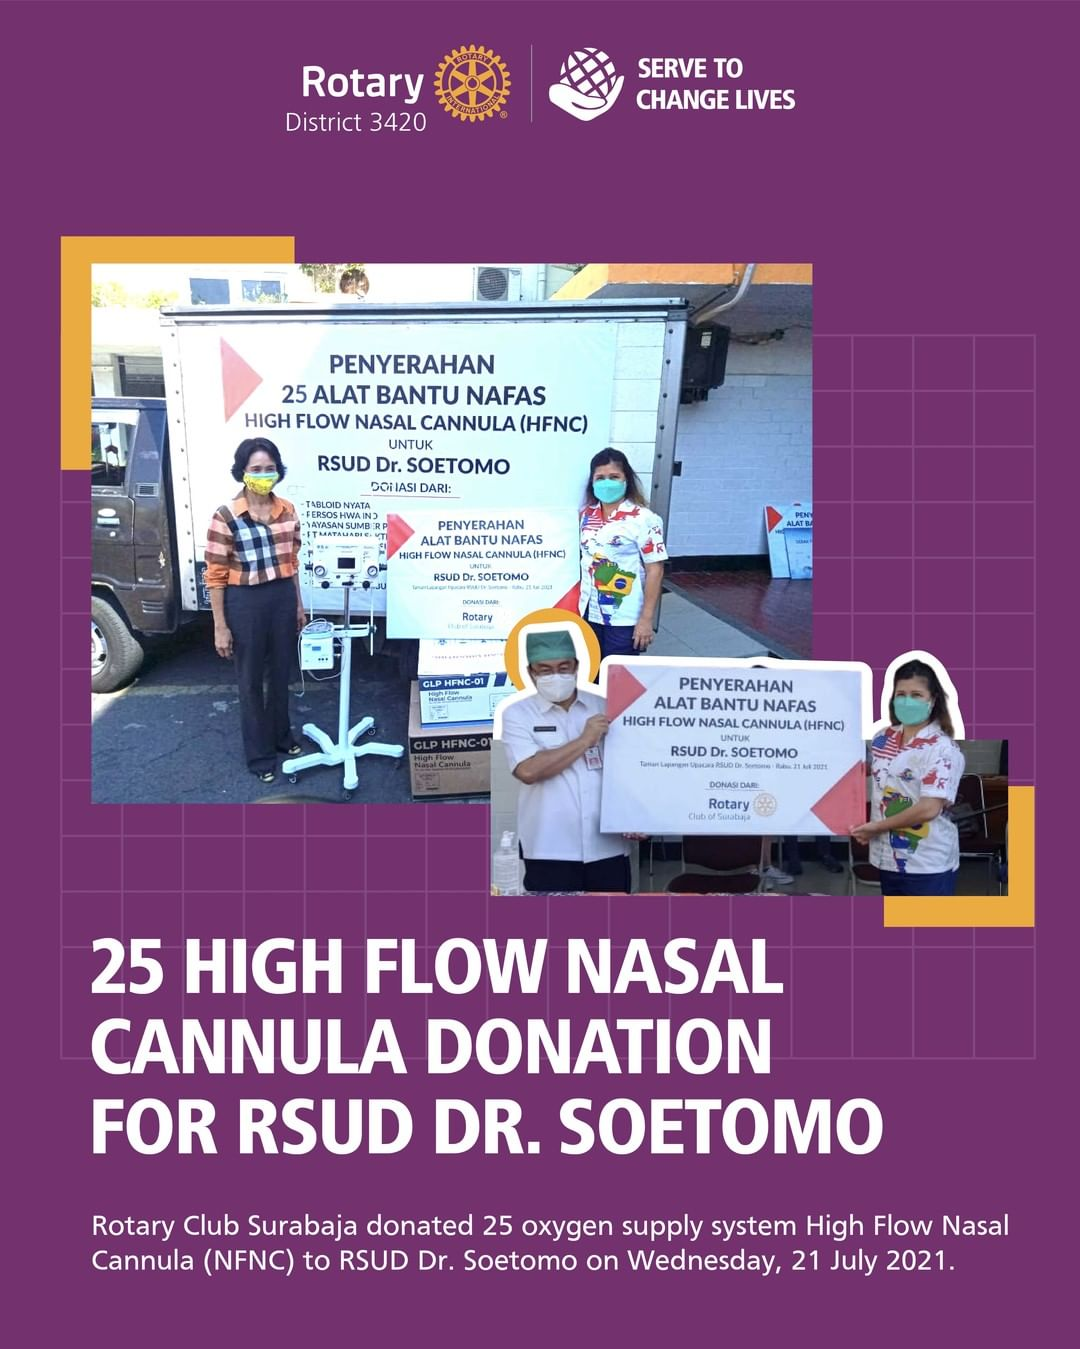 25 High Flow Nasal Cannula Donation for RSUD Dr. Soetomo